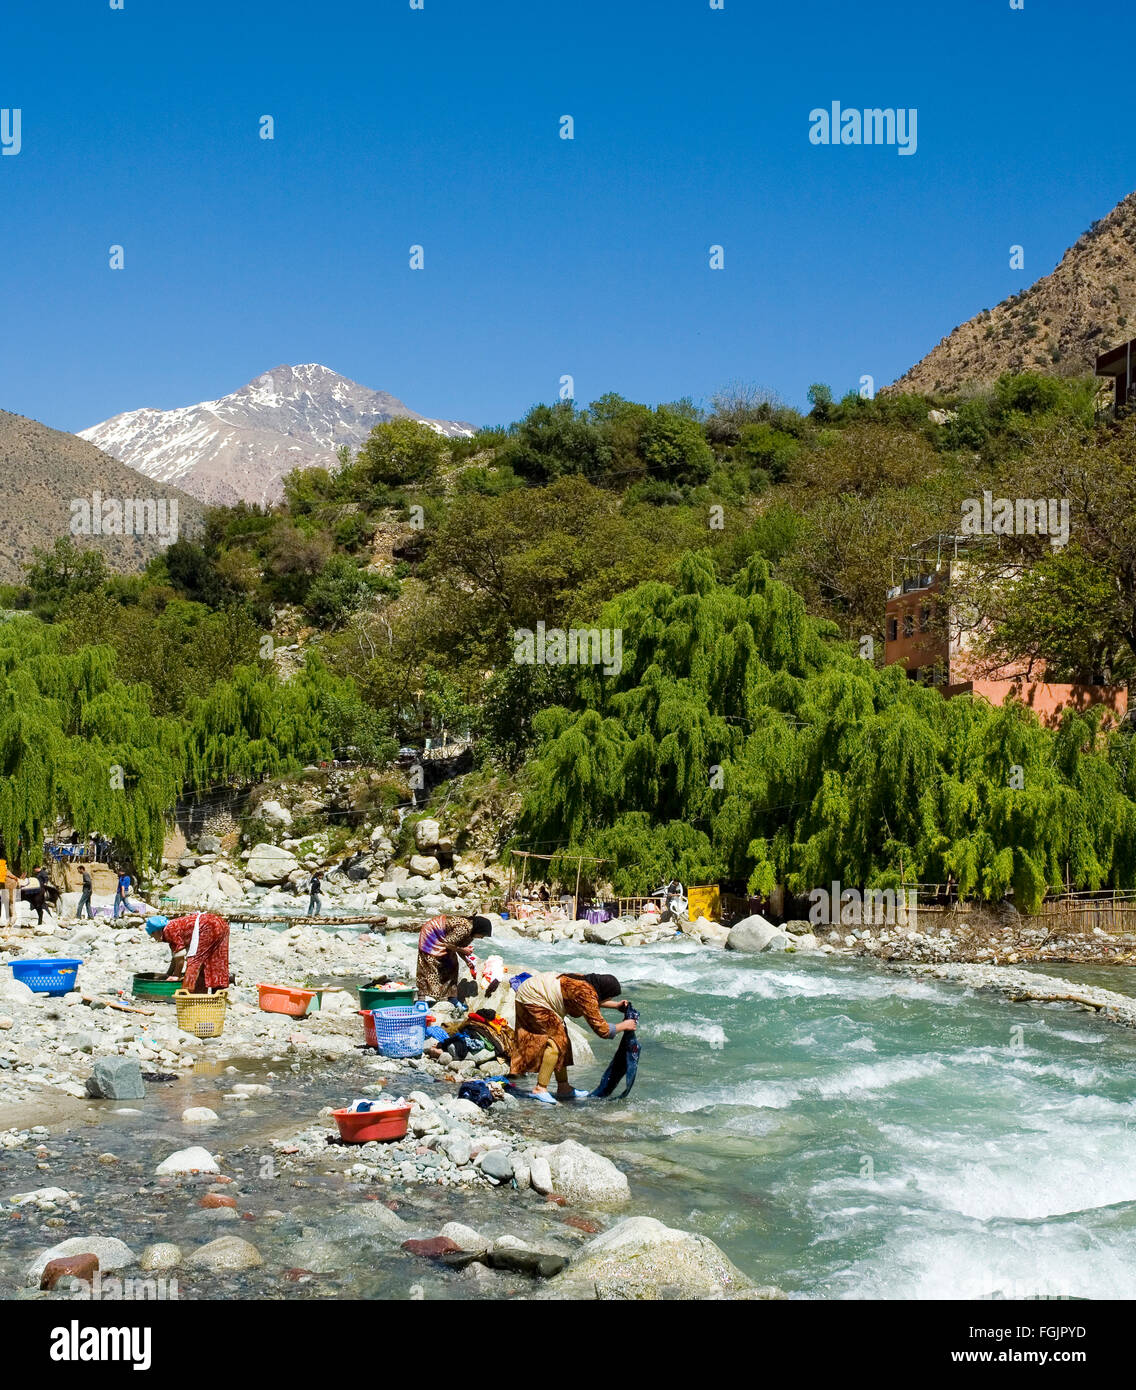 Washing Clothes in the river at Setti Fatma,  Ourika Valley, Morocco near Marrakech - Stock Image